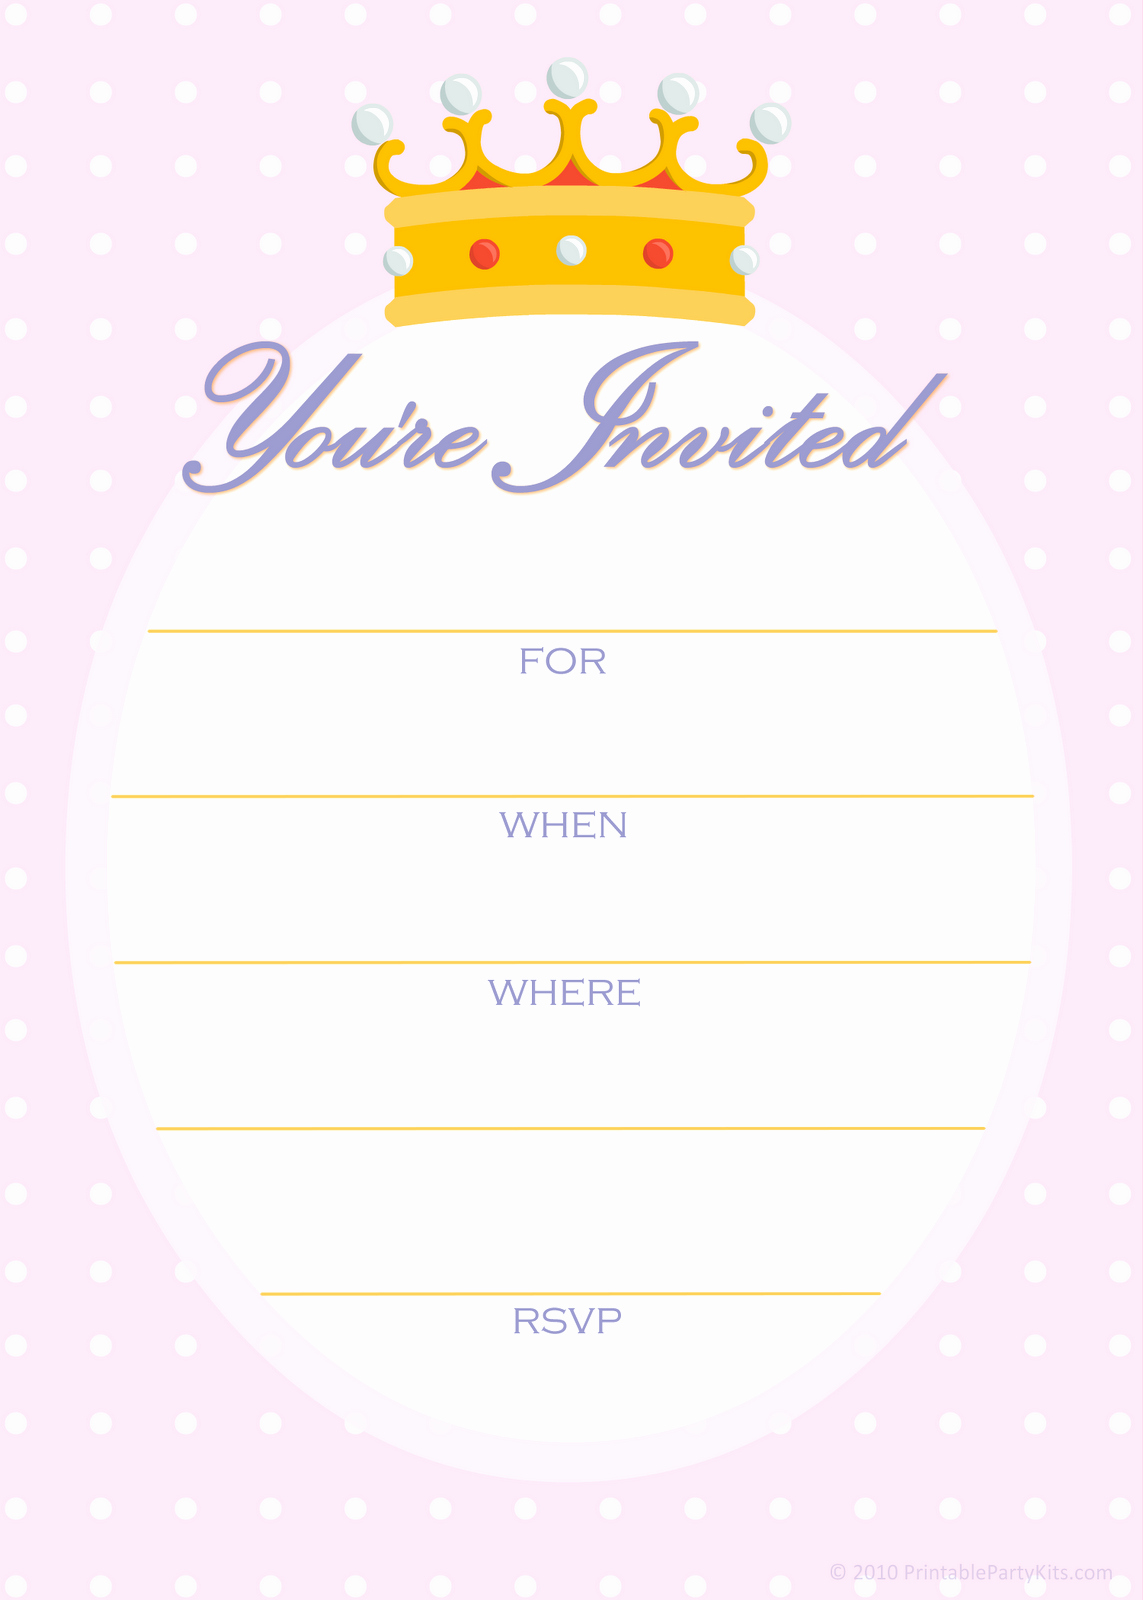 Free Printable Birthday Invitation Templates Elegant Free Printable Golden Unicorn Birthday Invitation Template